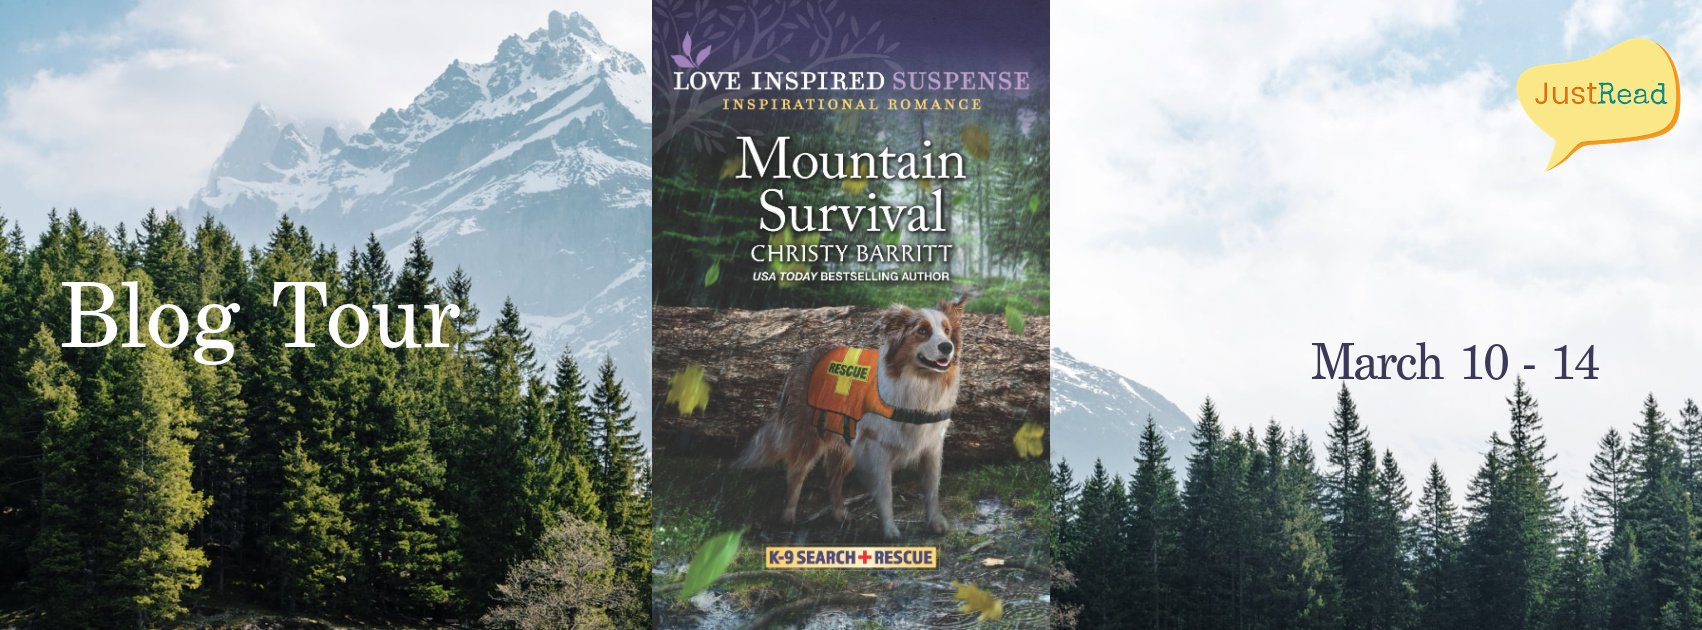 Mountain Survival JustRead Blog Tour